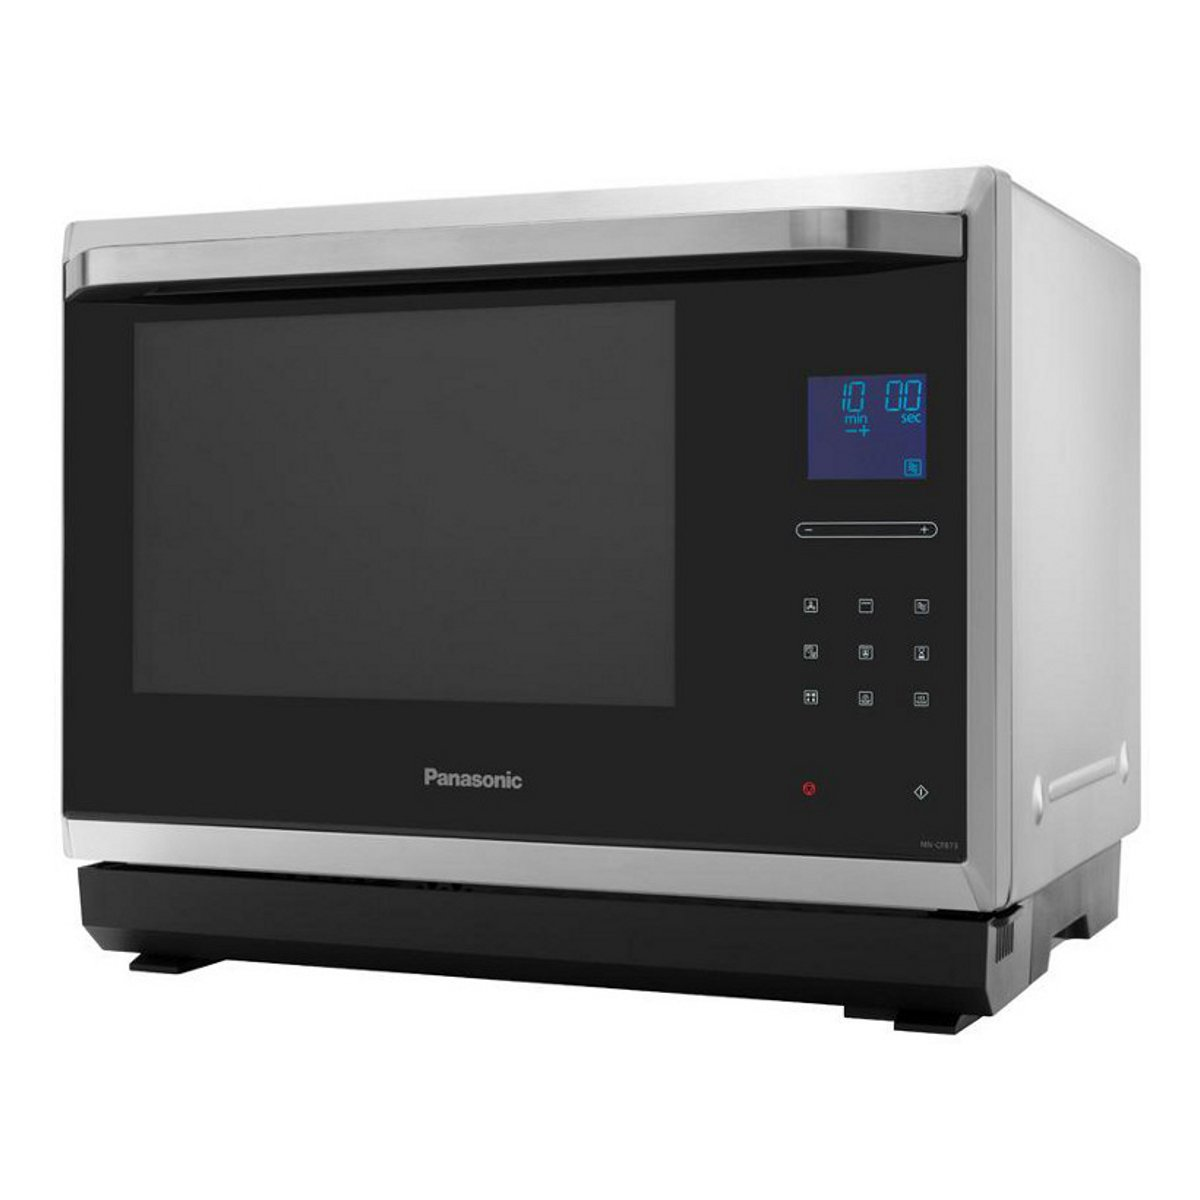 Combi Oven For Home Hafele J70bio Multifuction Oven Ws